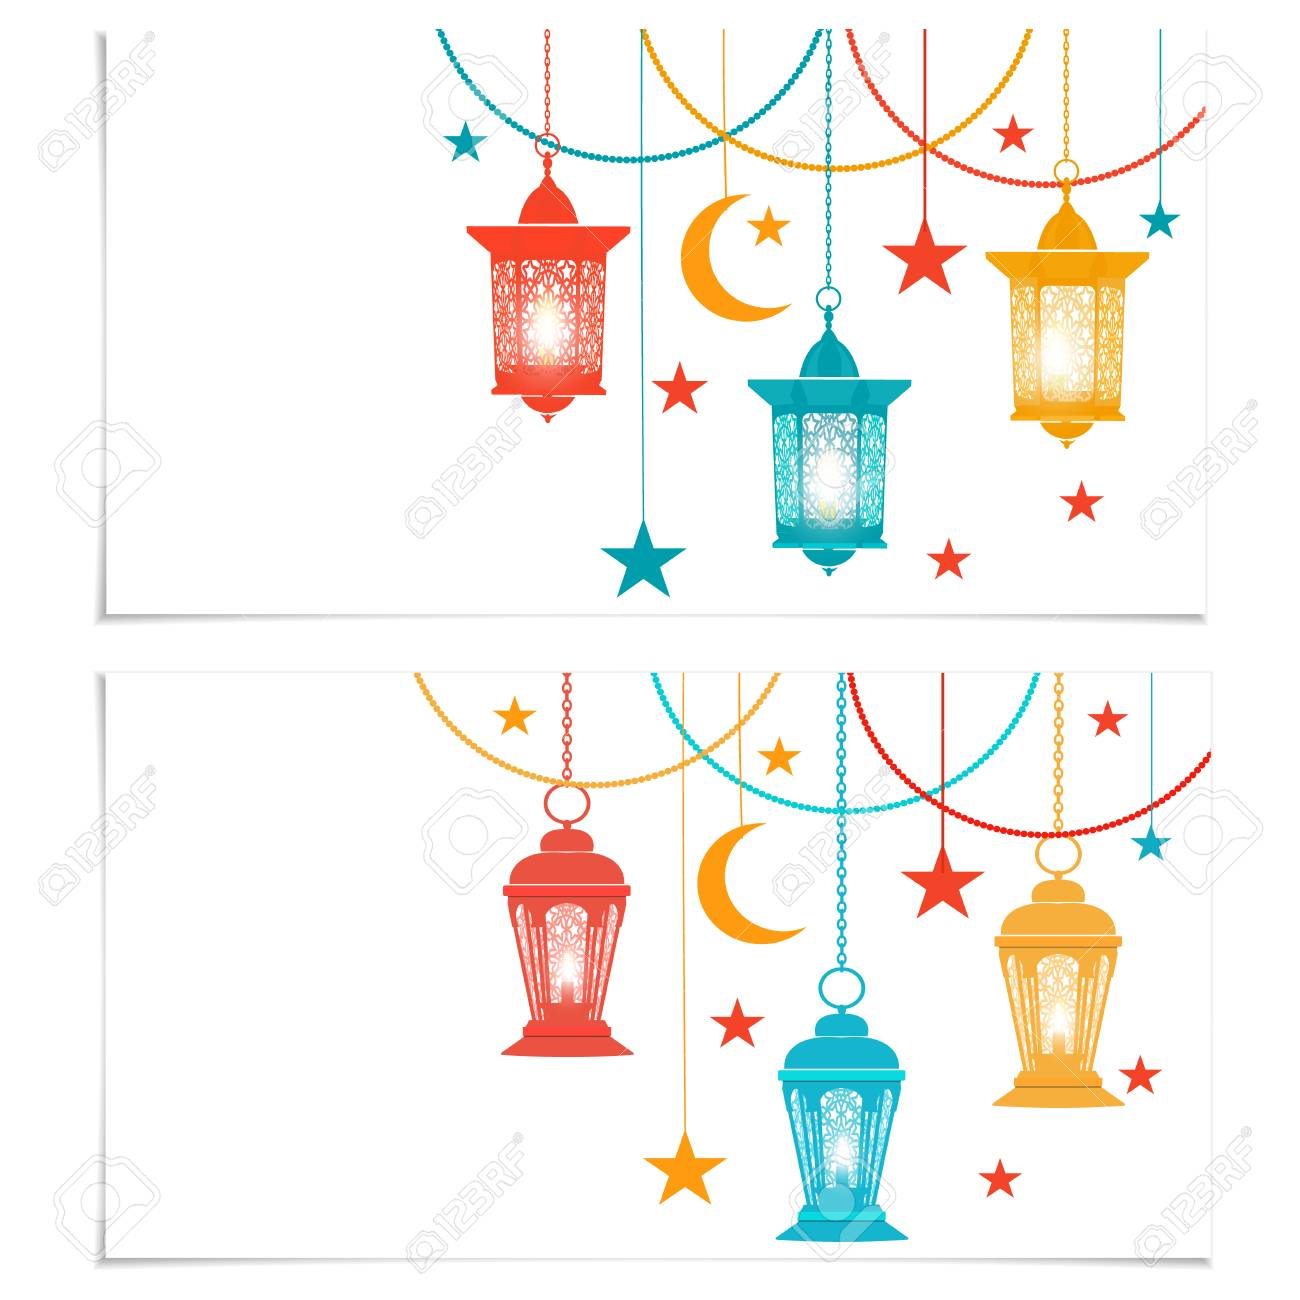 Ramadan kareem flyers business cards or invitation cards colored illustration ramadan kareem flyers business cards or invitation cards colored lanterns in oriental style isolated on white background illustration colourmoves